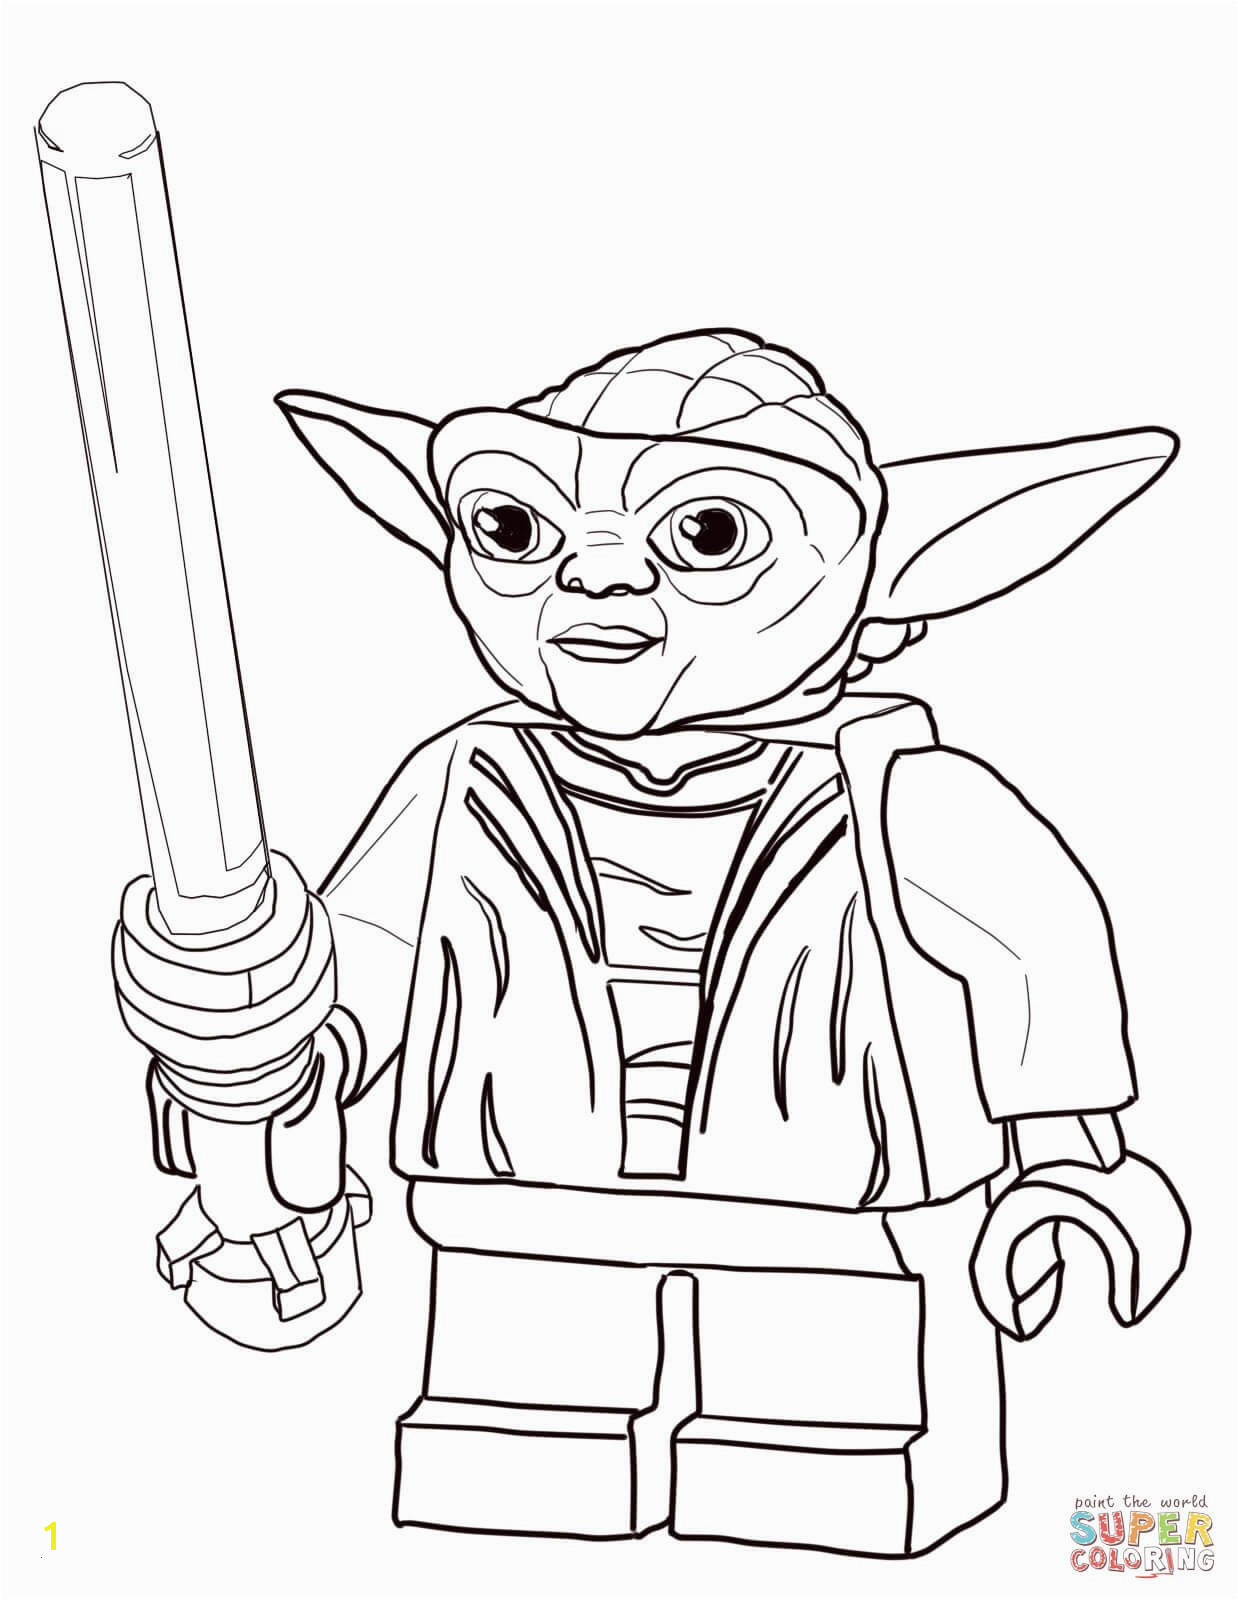 Malvorlagen Star Wars Best Lego Star Wars 3 Coloring Pages Star Wars Coloring Pages Awesome